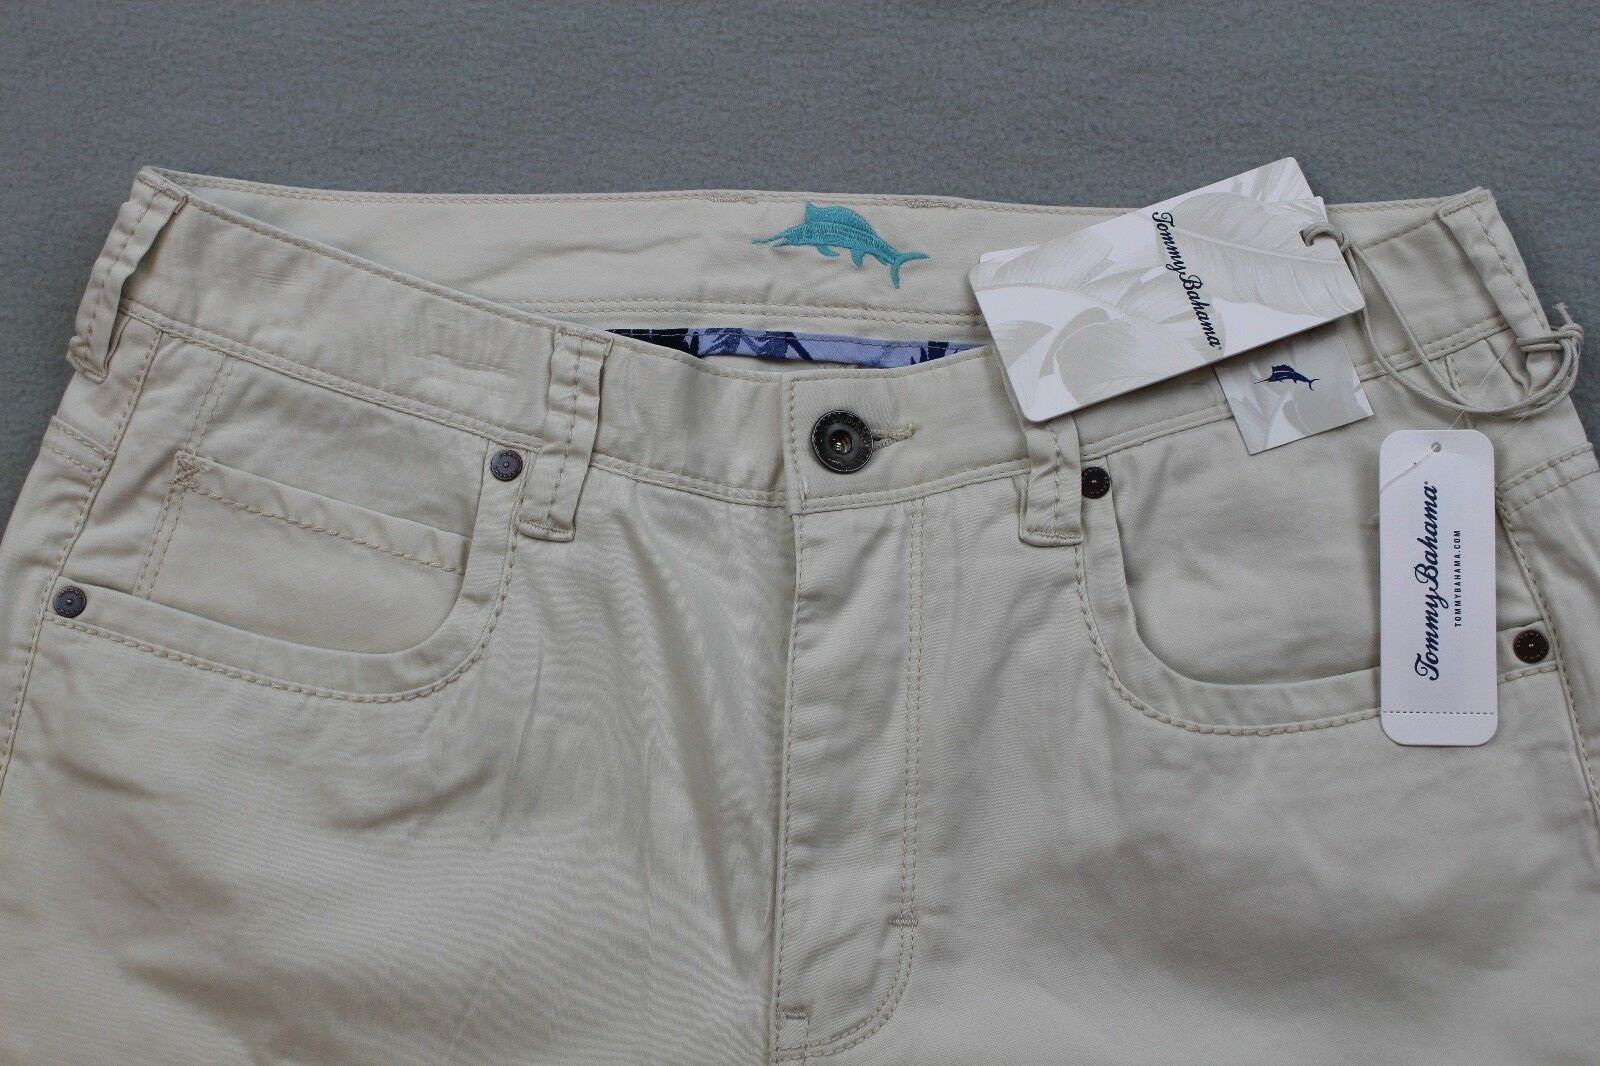 7d8845ea Tommy Bahama Mens Chinos Boracay Vintage Fit Bleached Sand Size 32x34 for  sale online   eBay